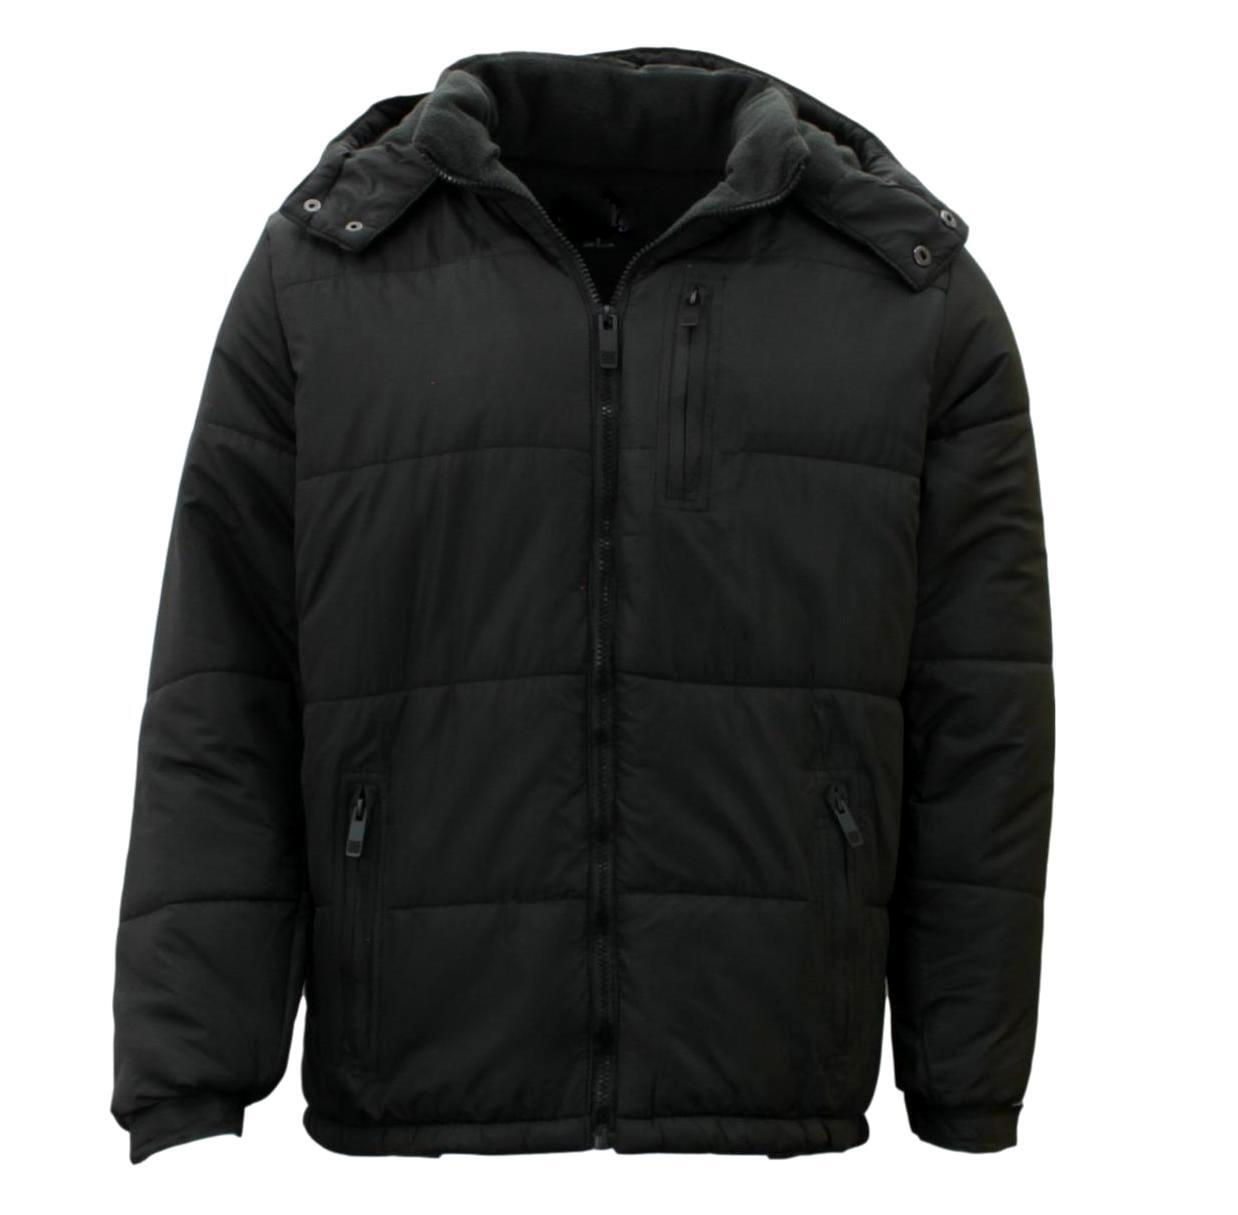 Stitch-Dodge-Mens-Parka-Puffer-Jacket-Quilted-Detachable-Hoodie-Puffy-Padded thumbnail 4